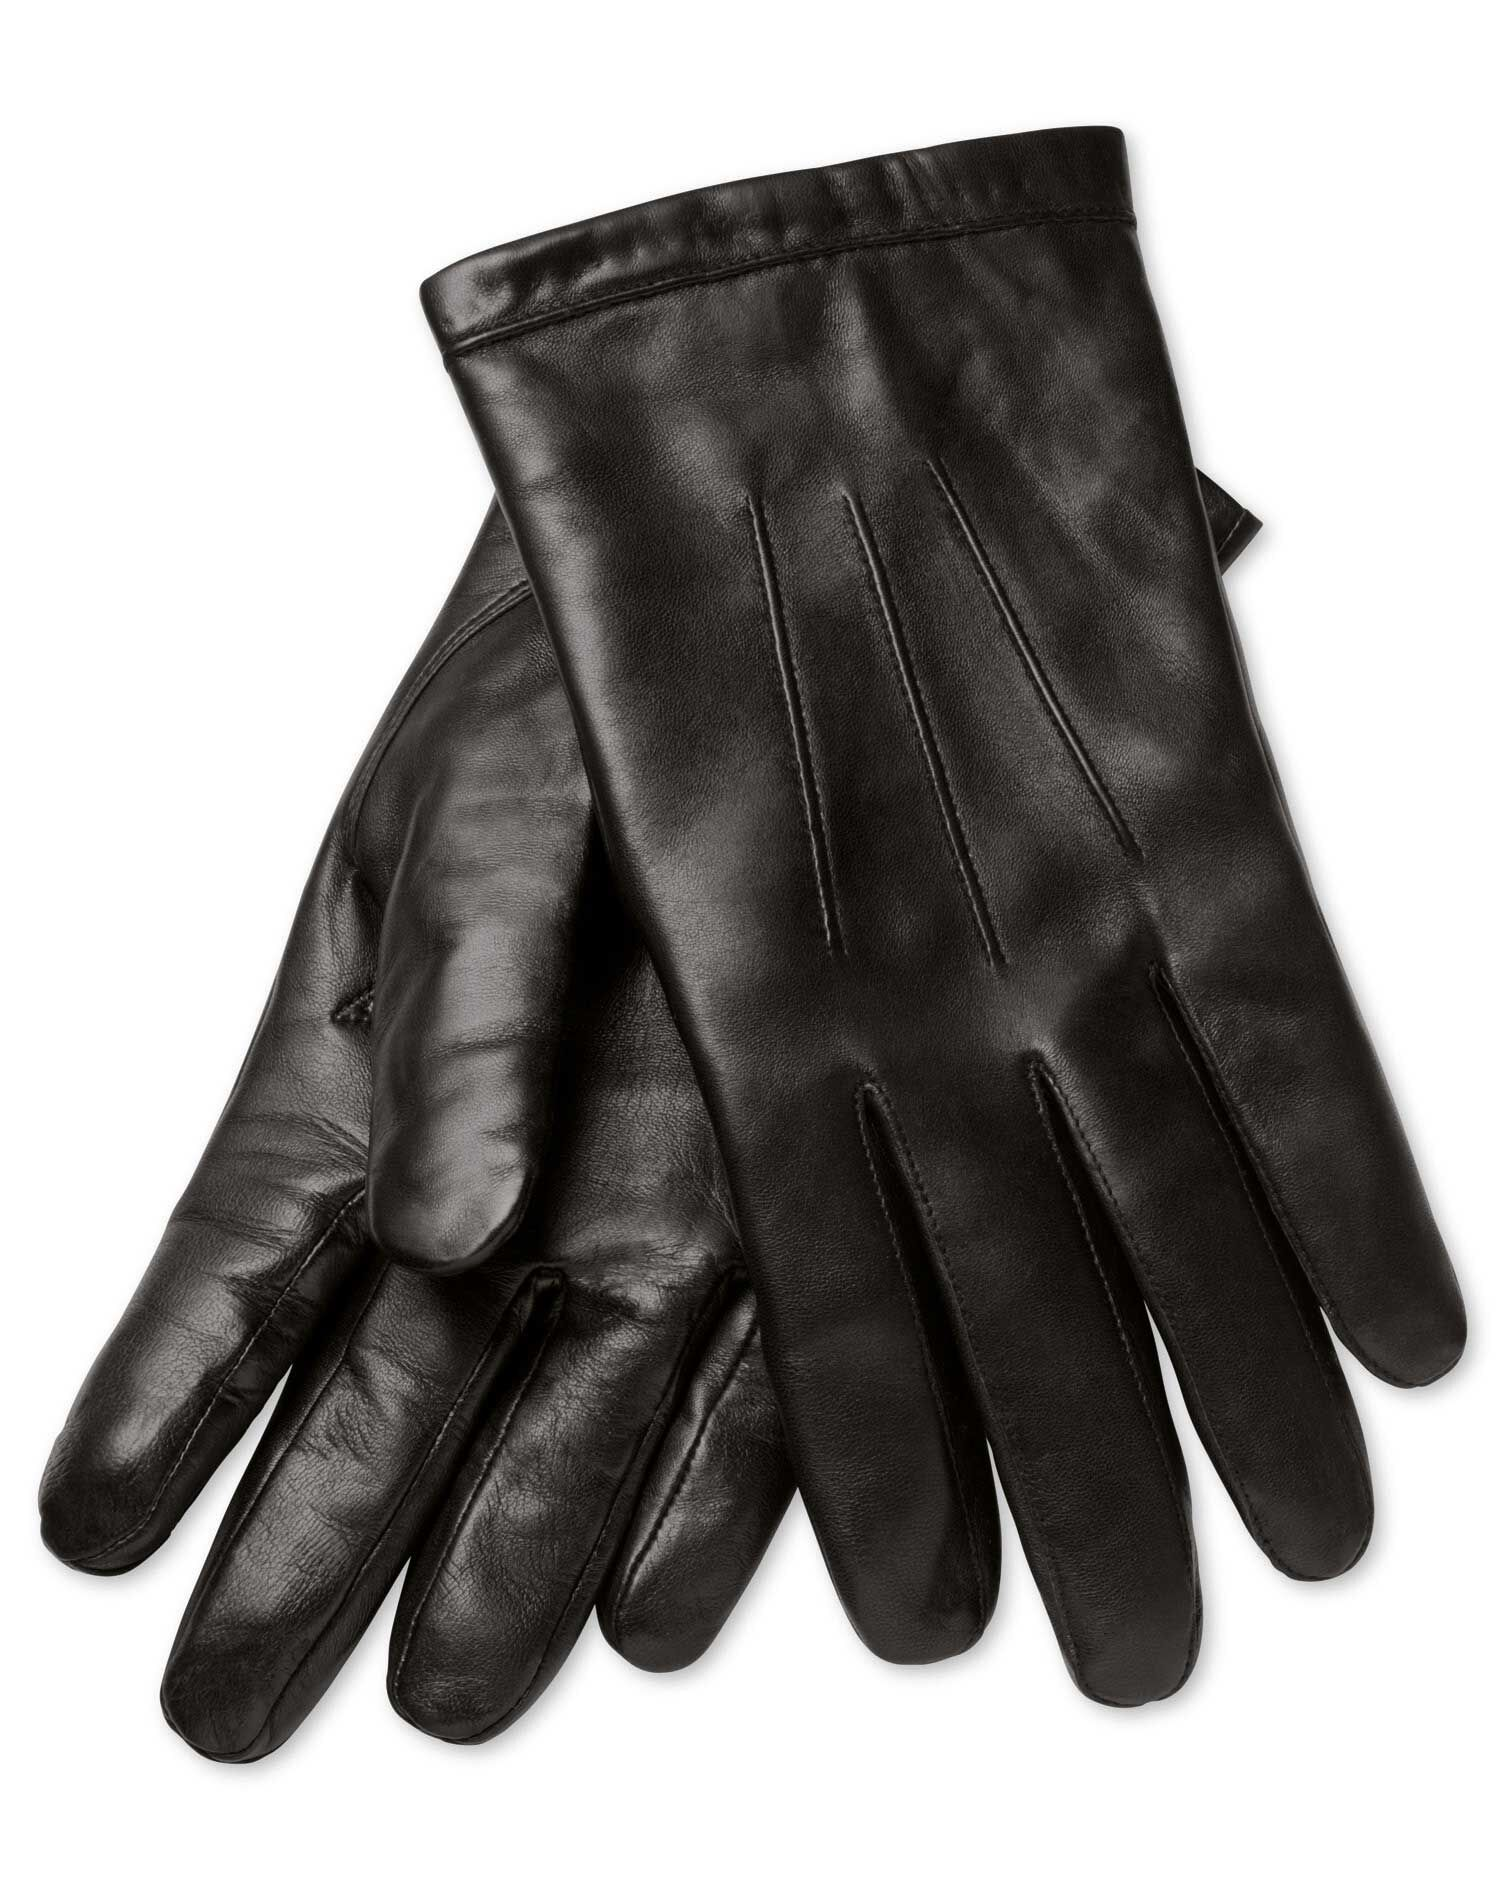 Childrens black leather gloves - History Of Vintage Men S Gloves 1900 To 1960s Charles Tyrwhitt Black Leather Gloves 39 95